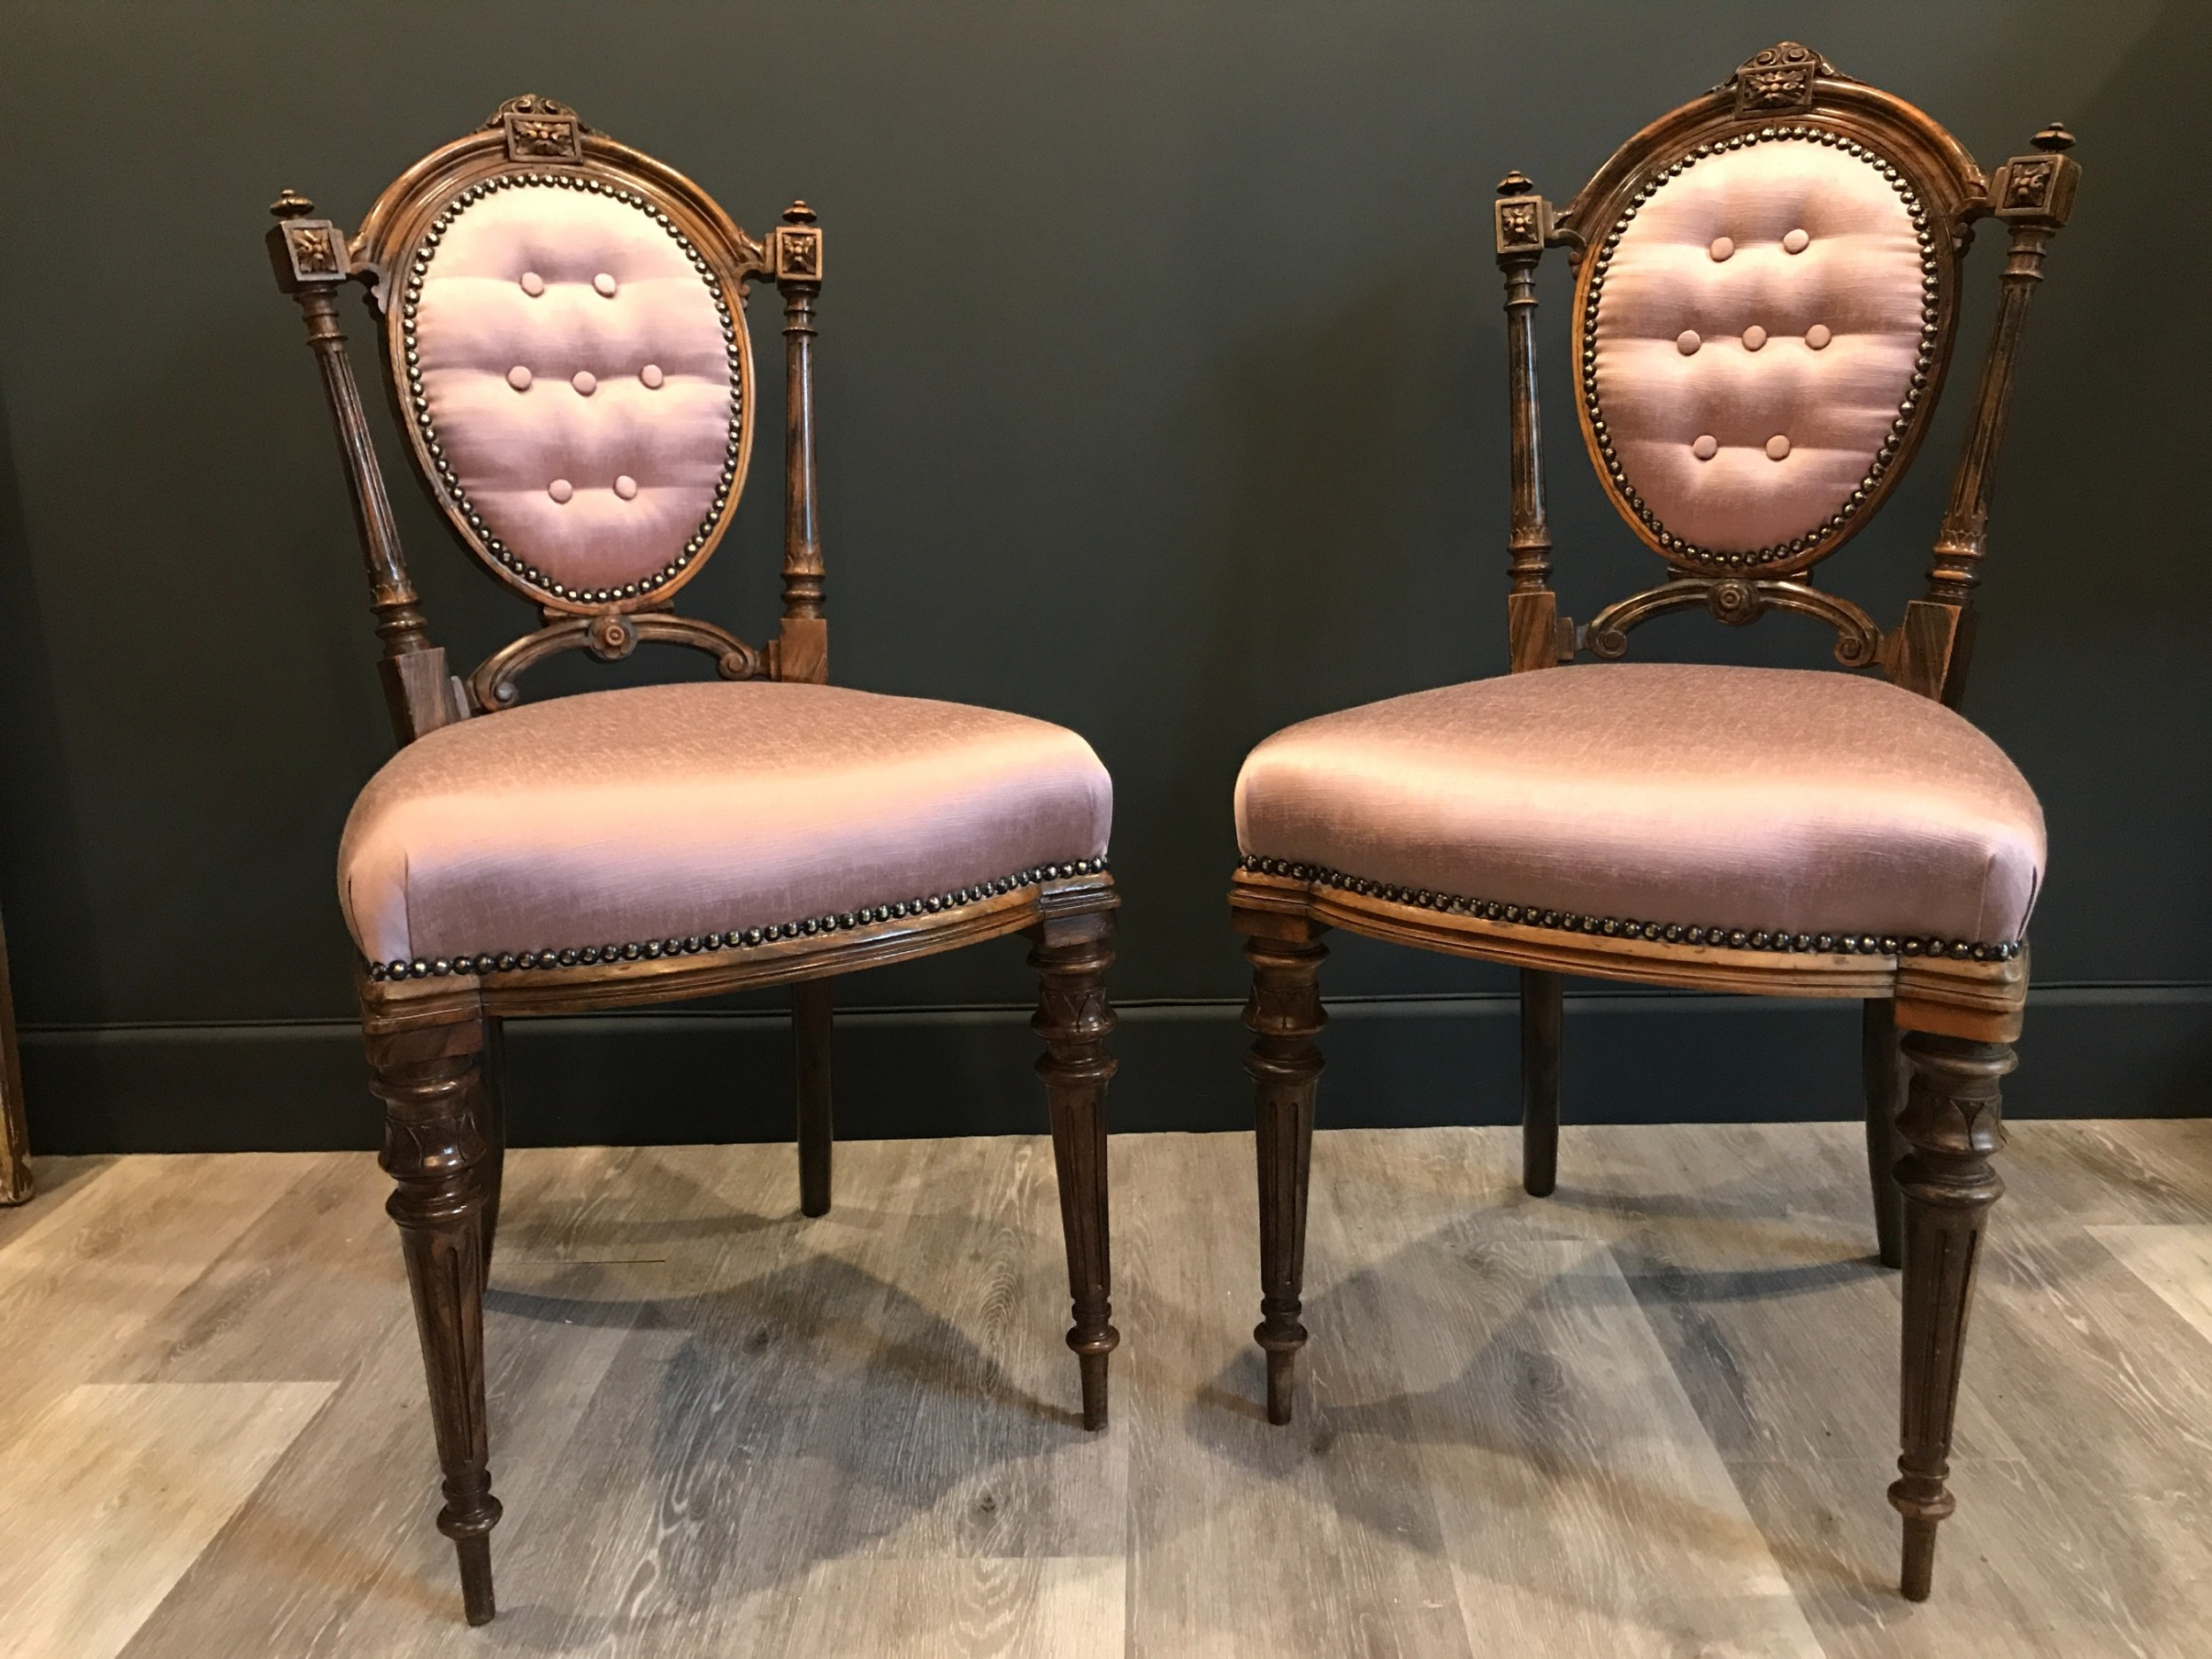 a pair of victorian era french salon chairs in walnut